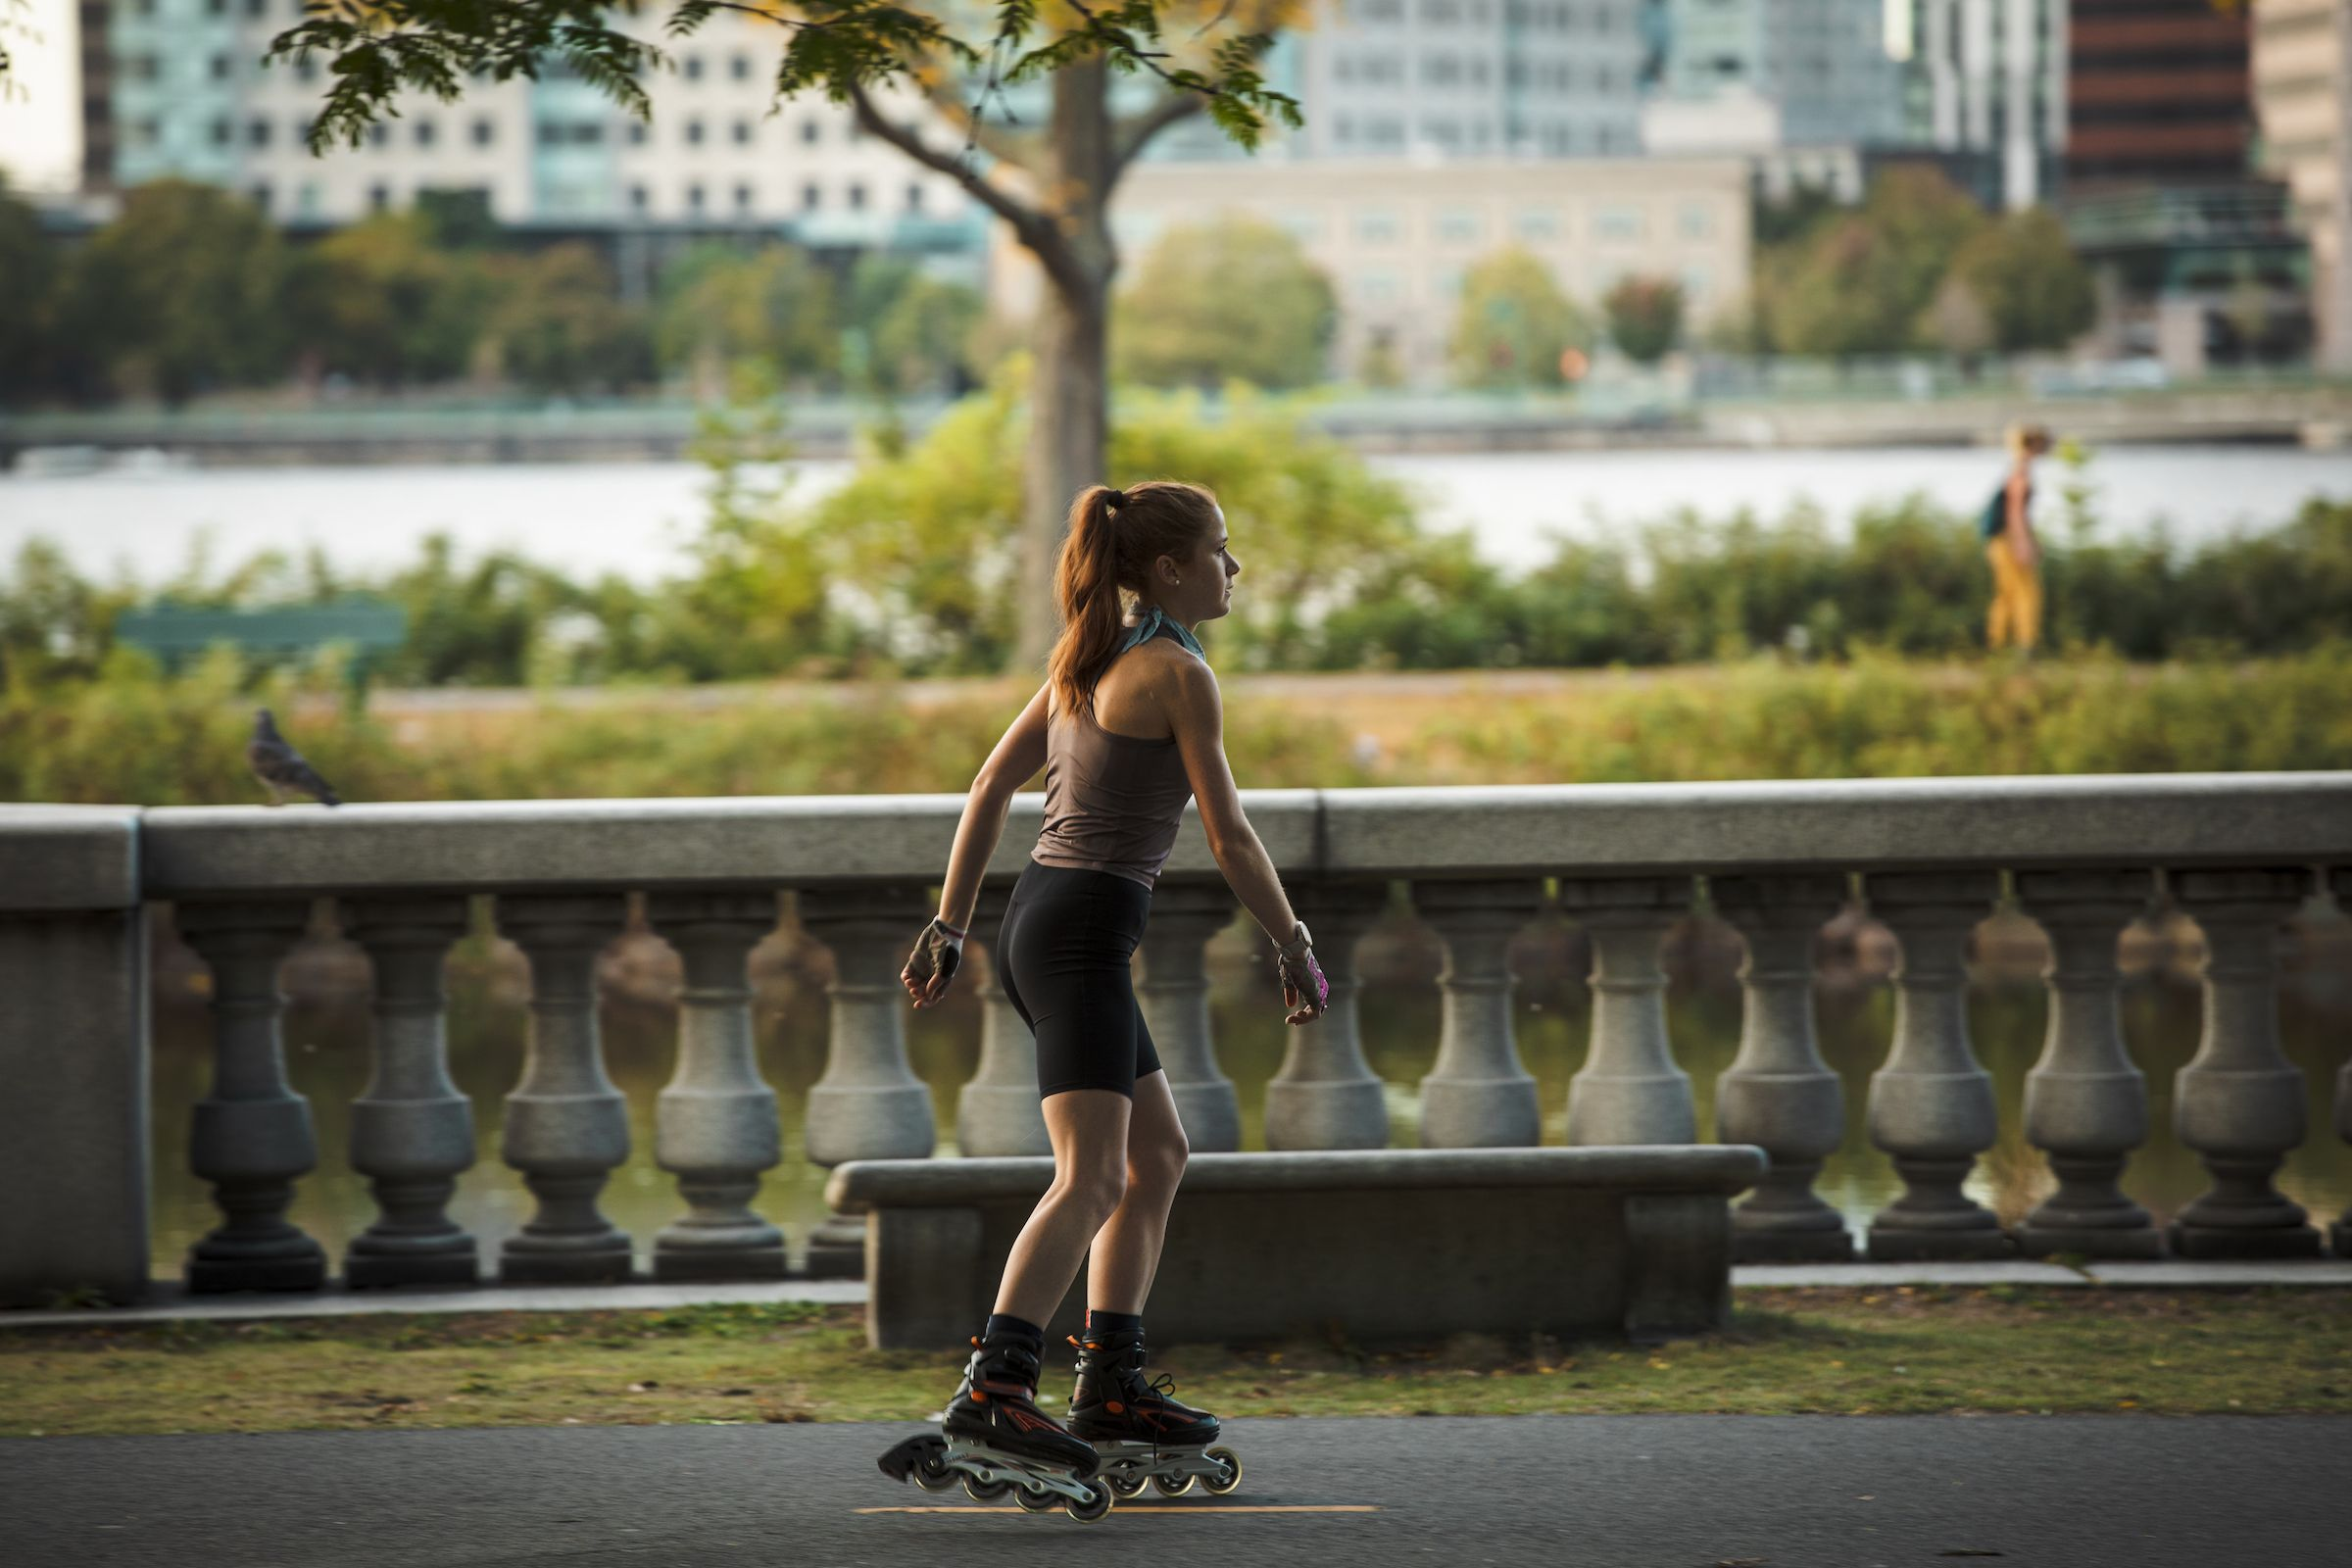 Can Roller Skating or Rollerblading Benefit Runners?